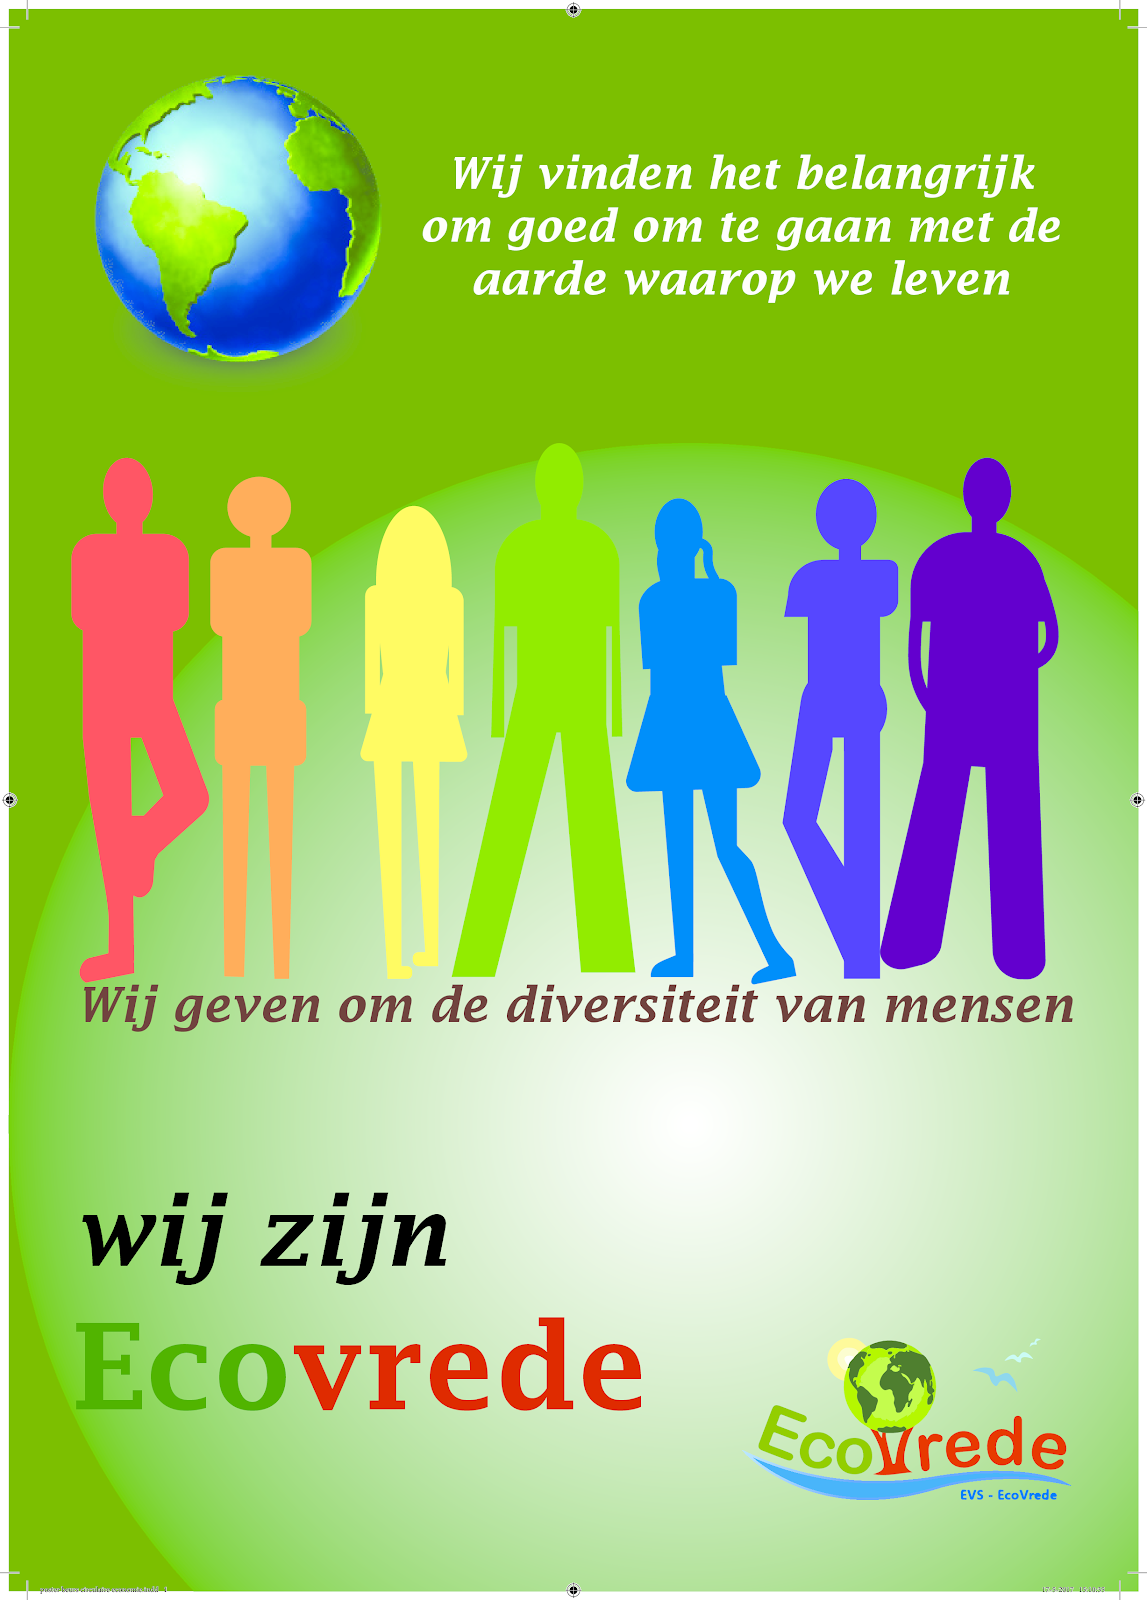 Poster-EcoVrede-www.ecovrede.nl.png